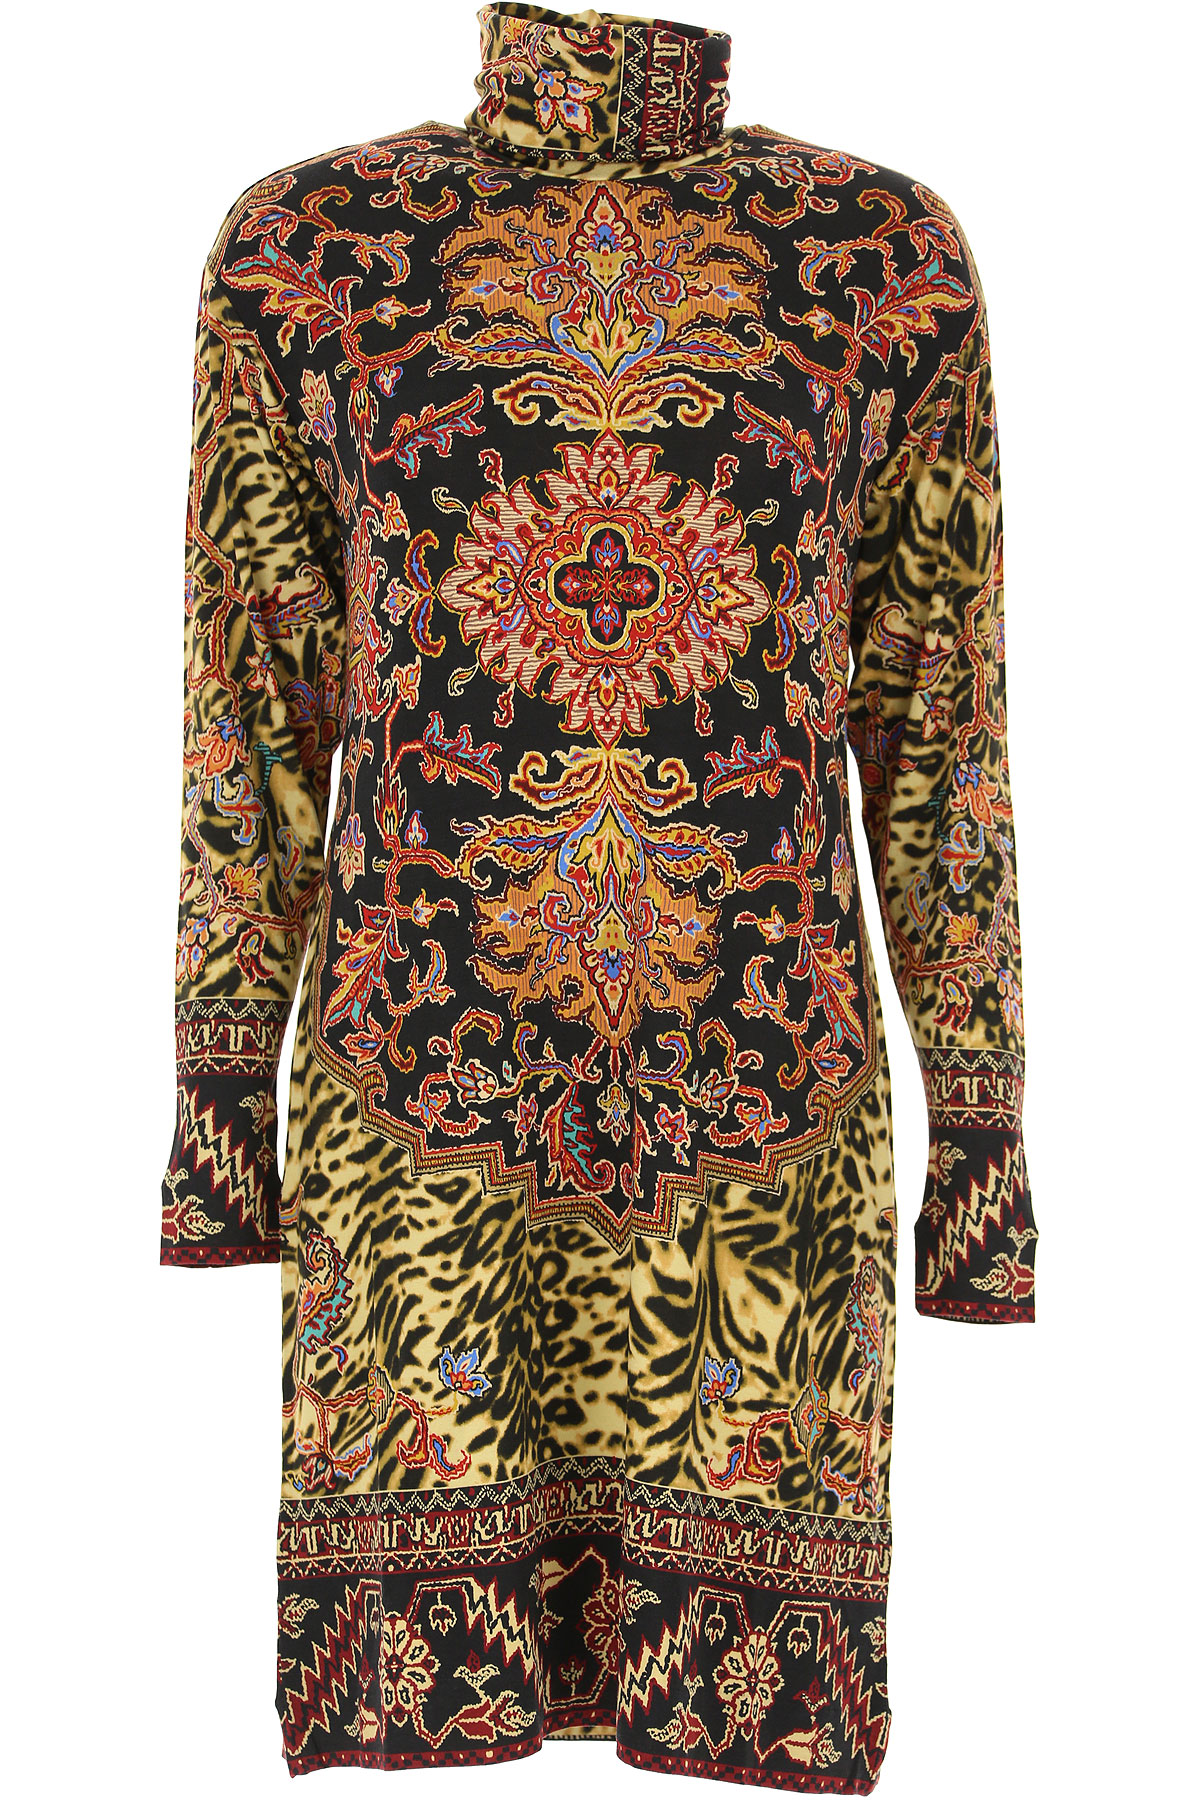 Etro Dress for Women, Evening Cocktail Party On Sale, Multicolor, viscosa, 2019, 6 8